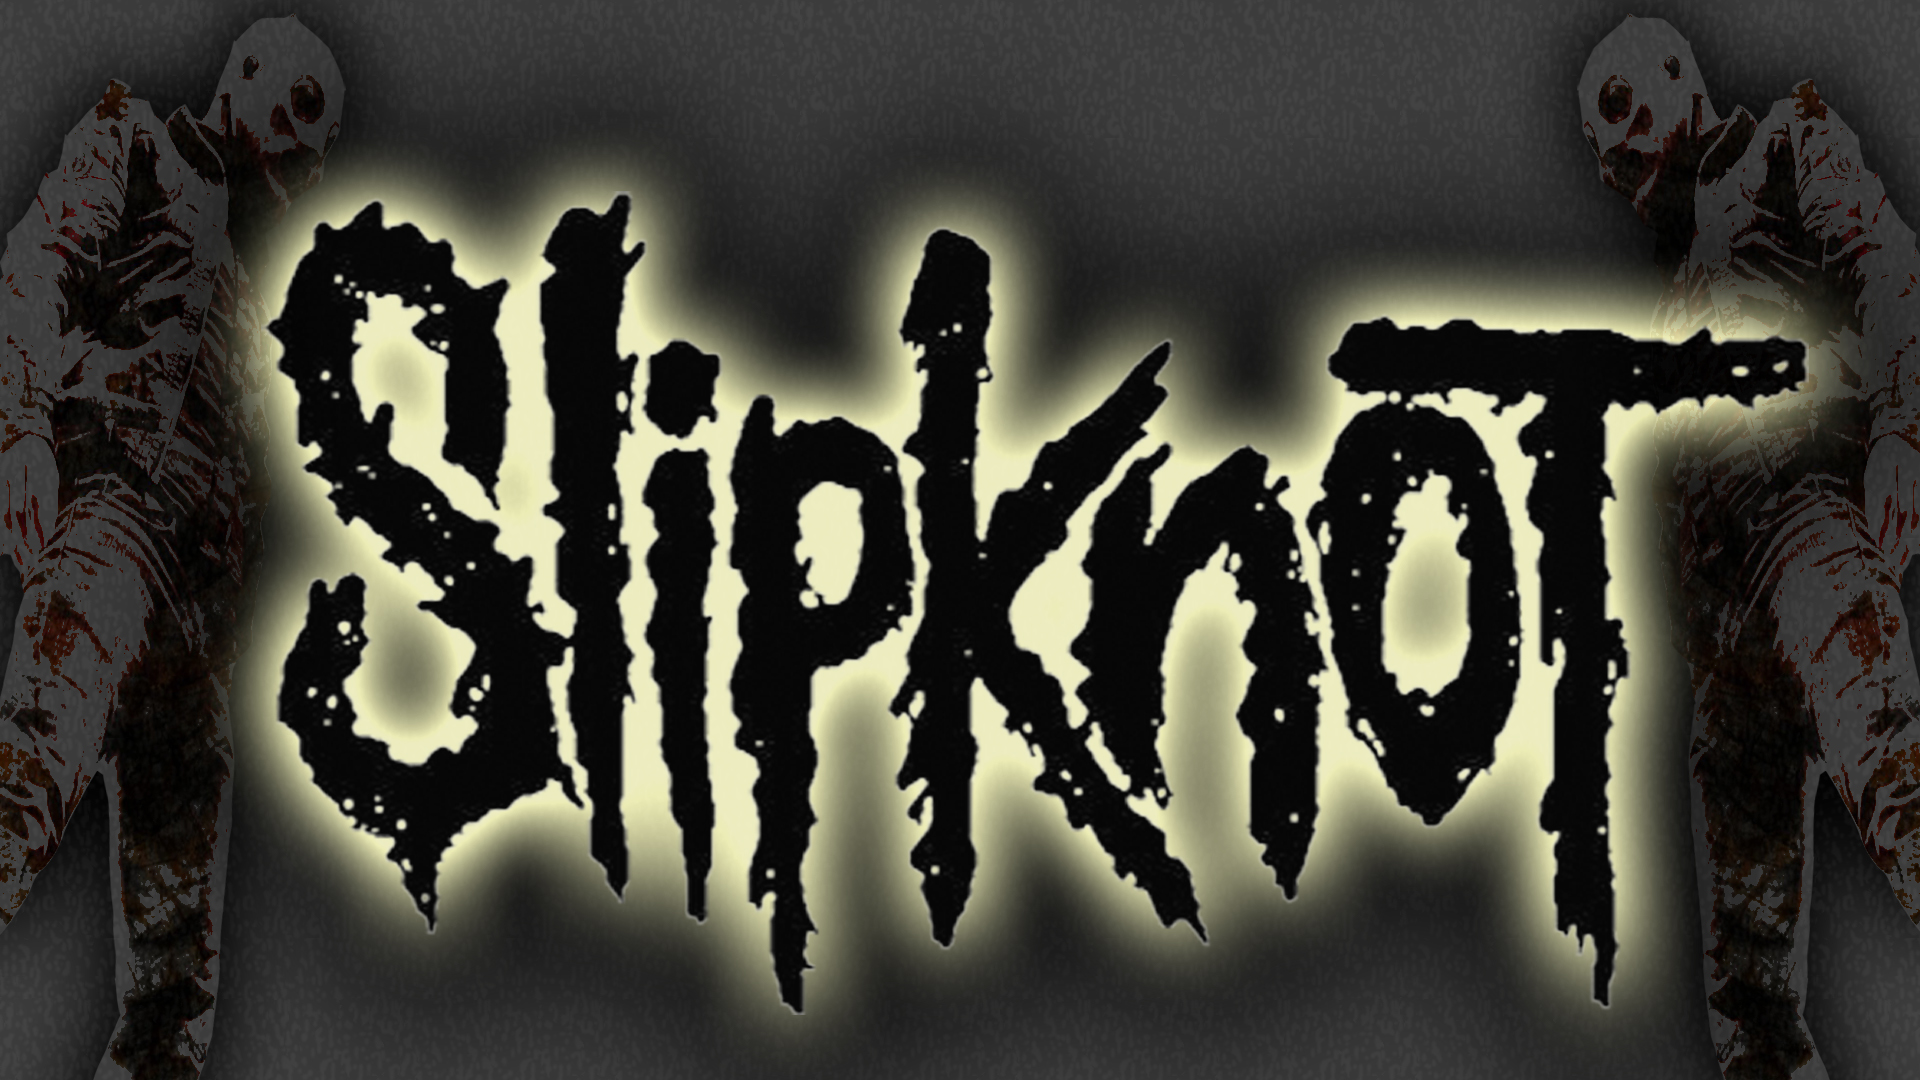 Corey Taylor Slipknot Wallpaper Full HD Wallpaper and Background